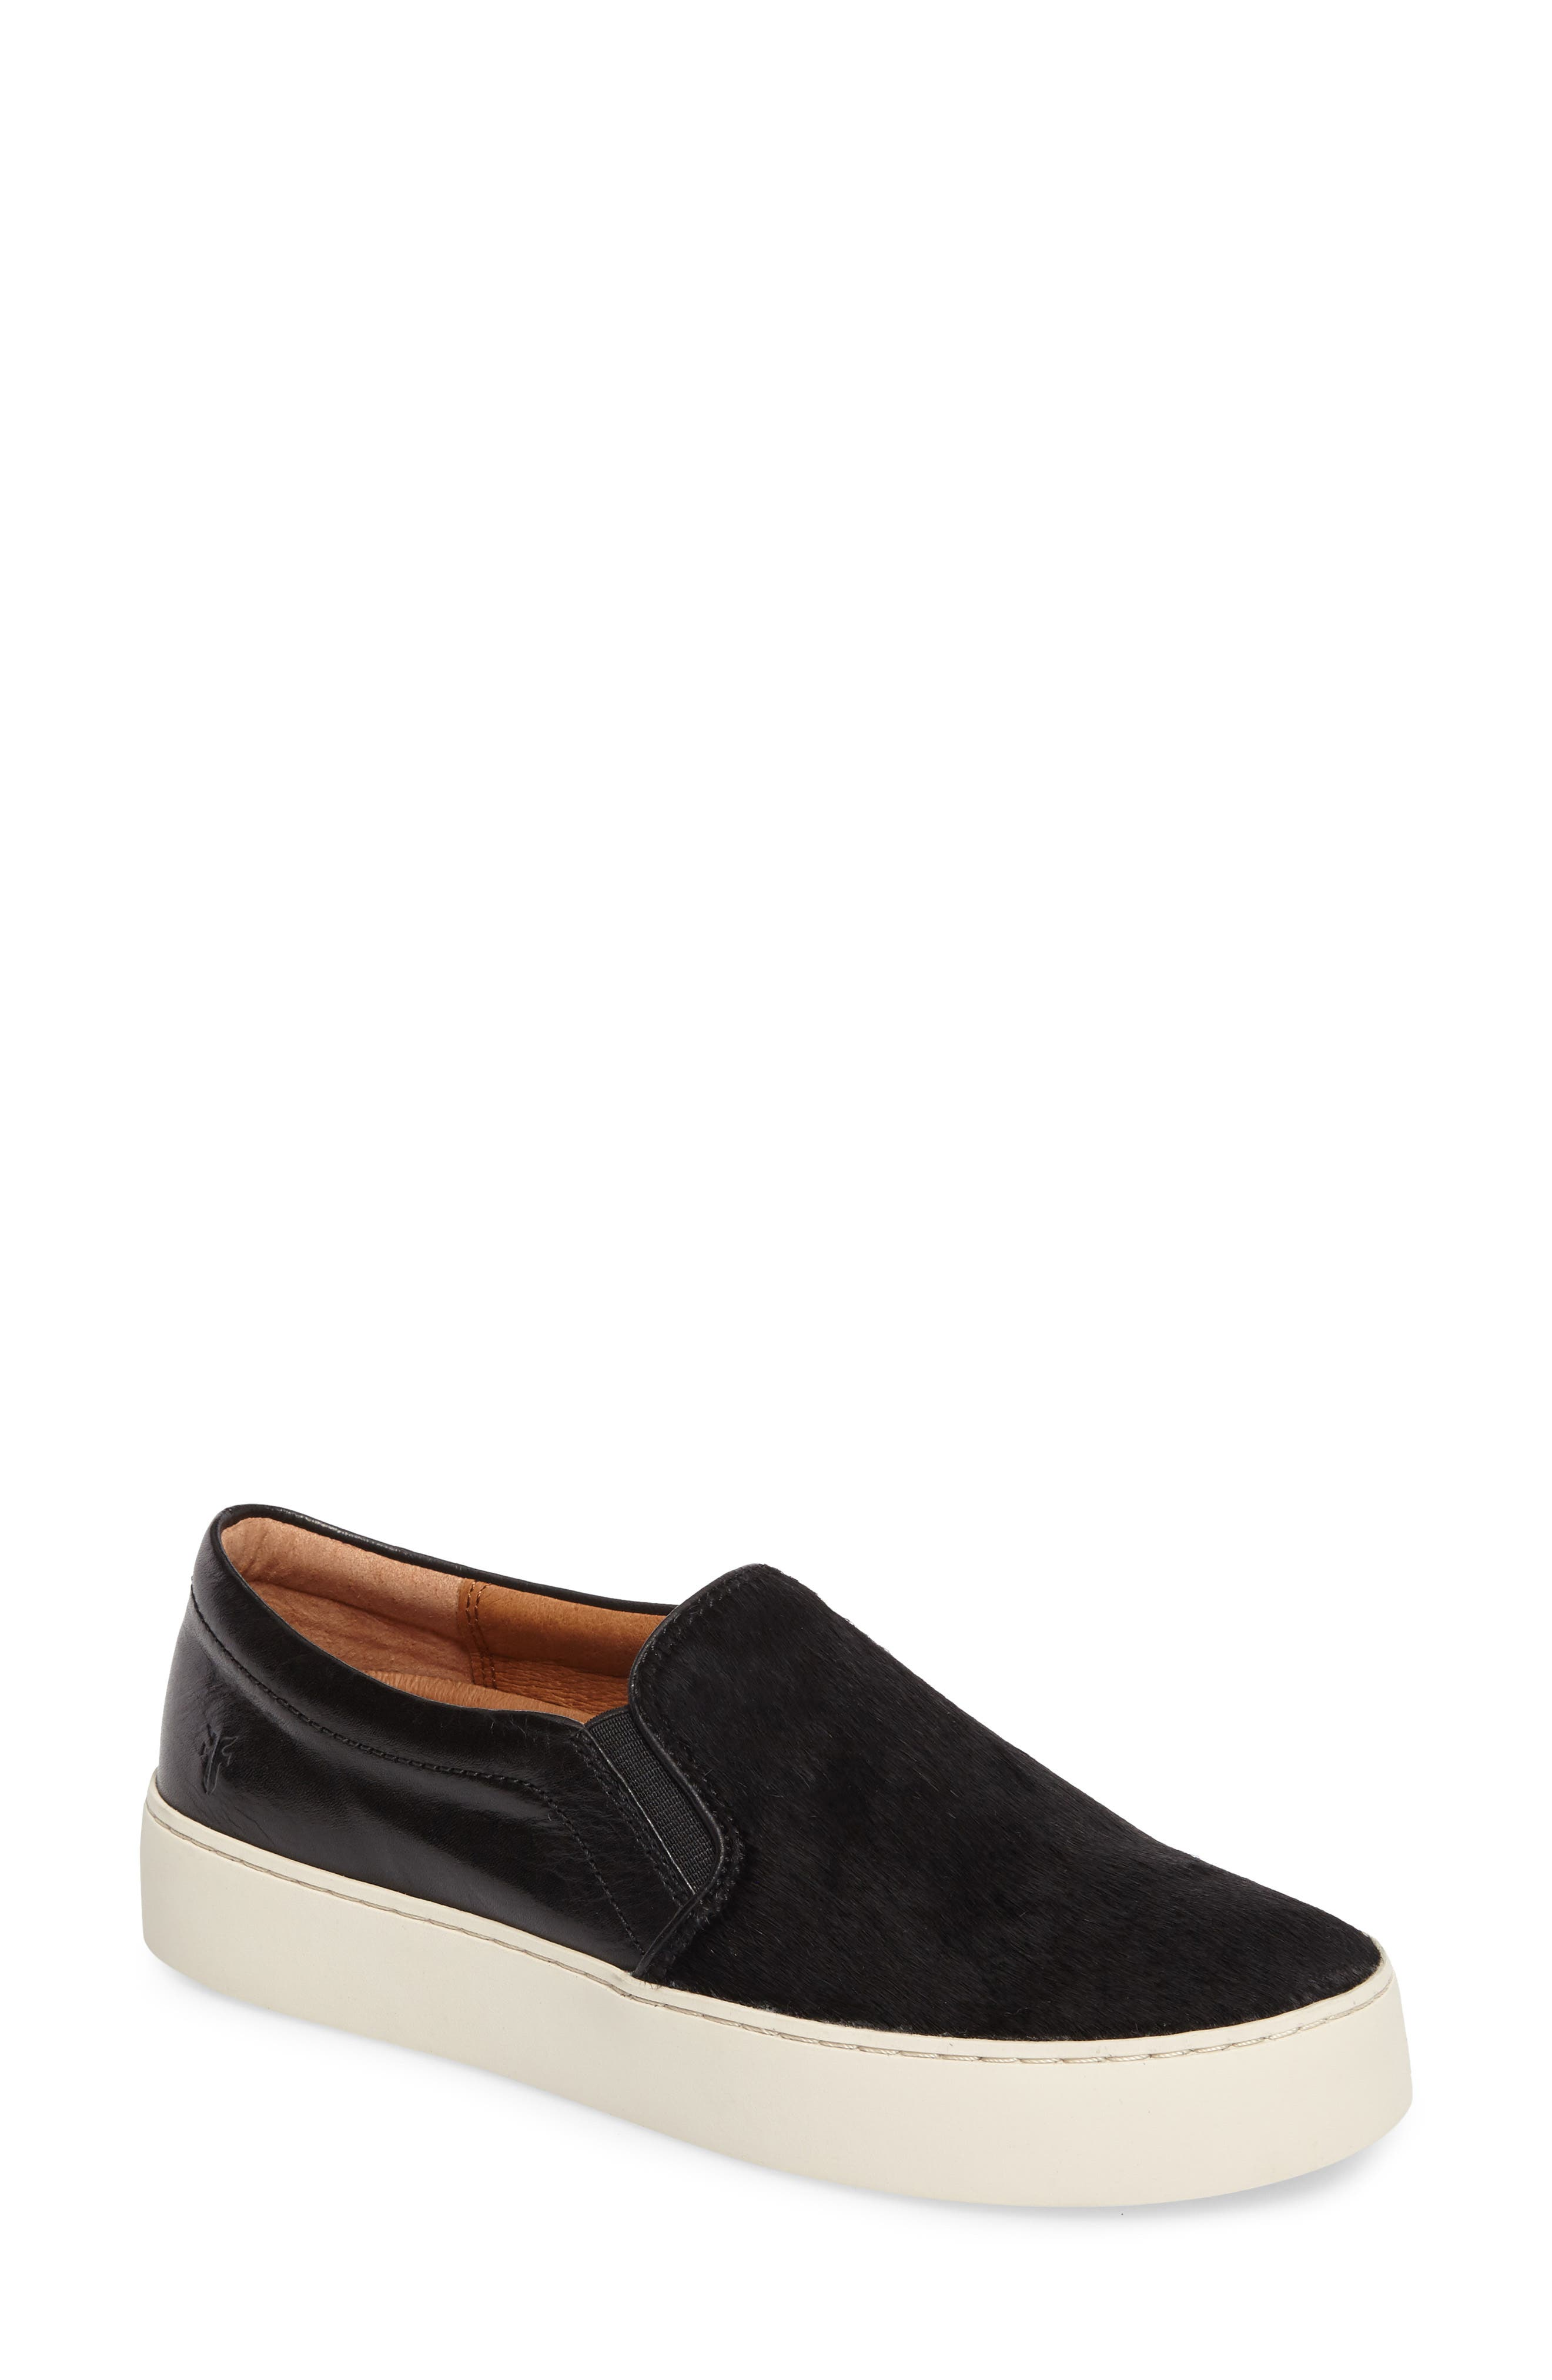 Lena Slip-On Sneaker,                             Main thumbnail 1, color,                             BLACK